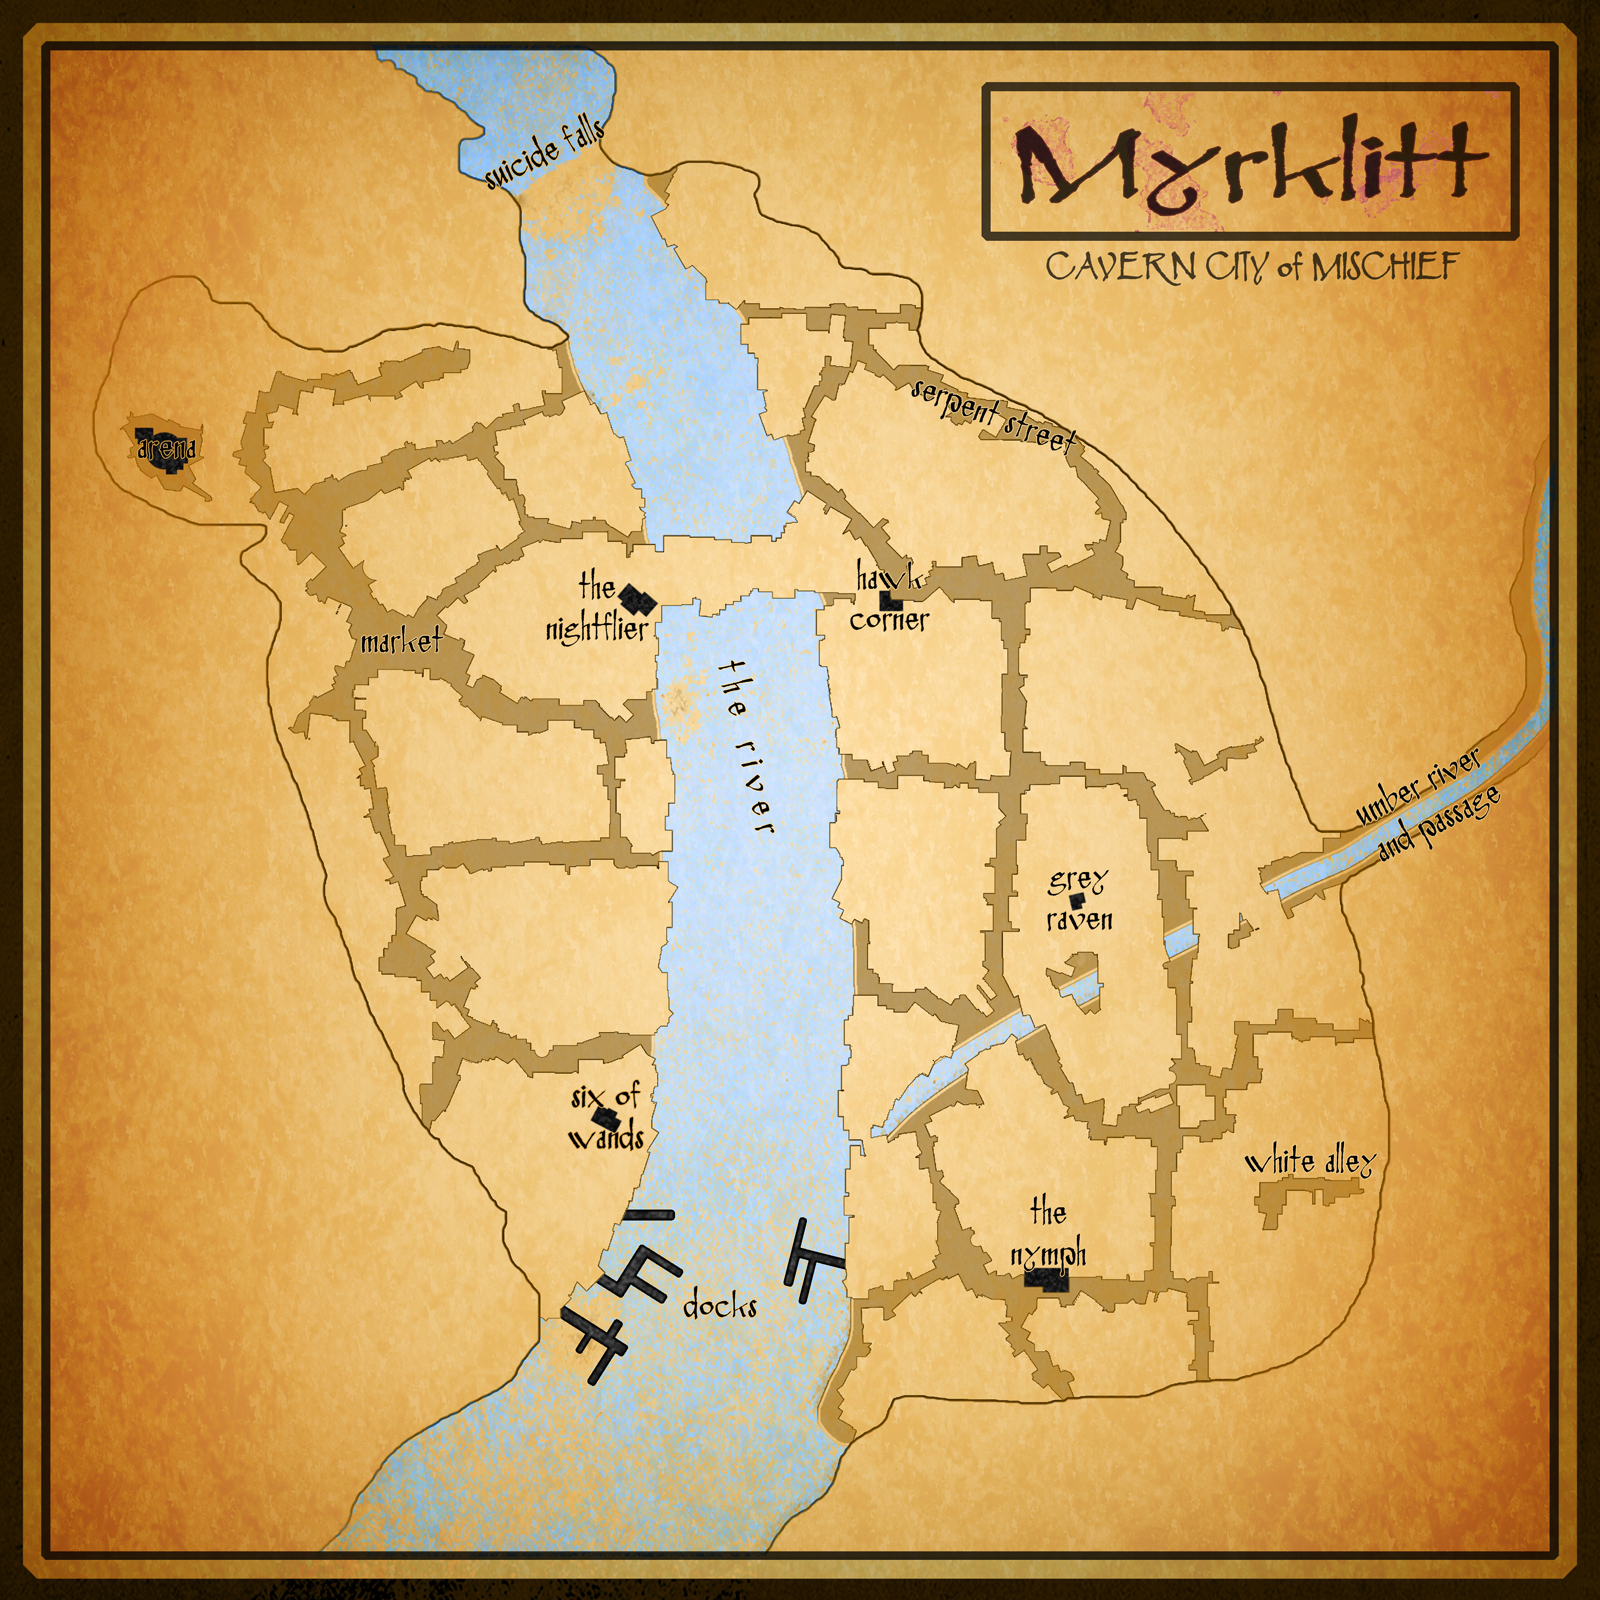 Myrklitt   City of Mischief